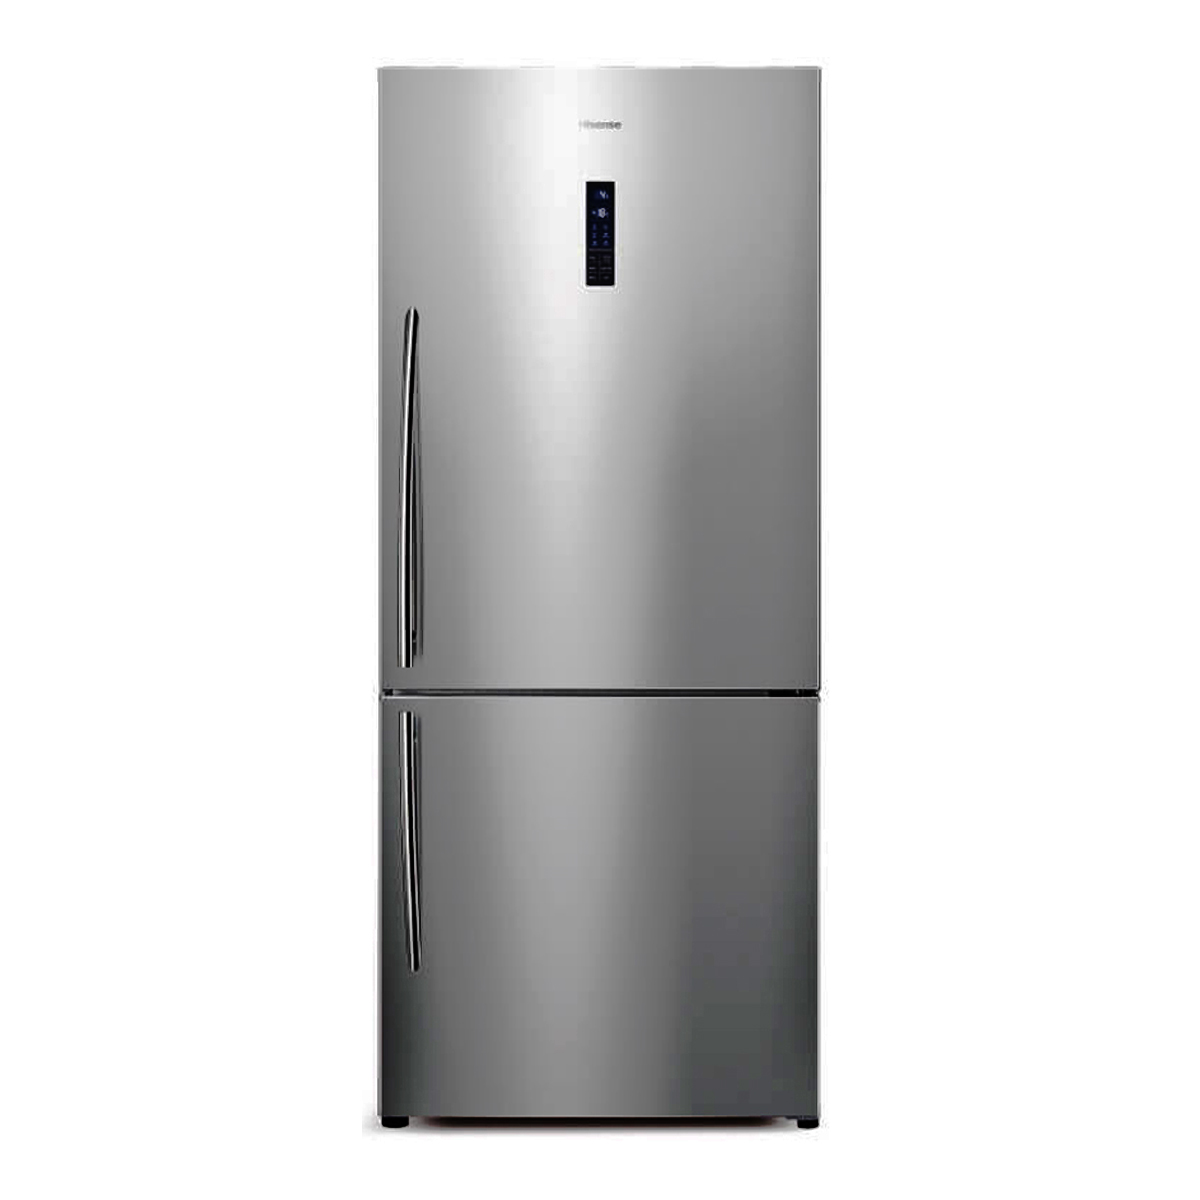 Hisense HR6BMFF520SD 520L Bottom Mount Fridge